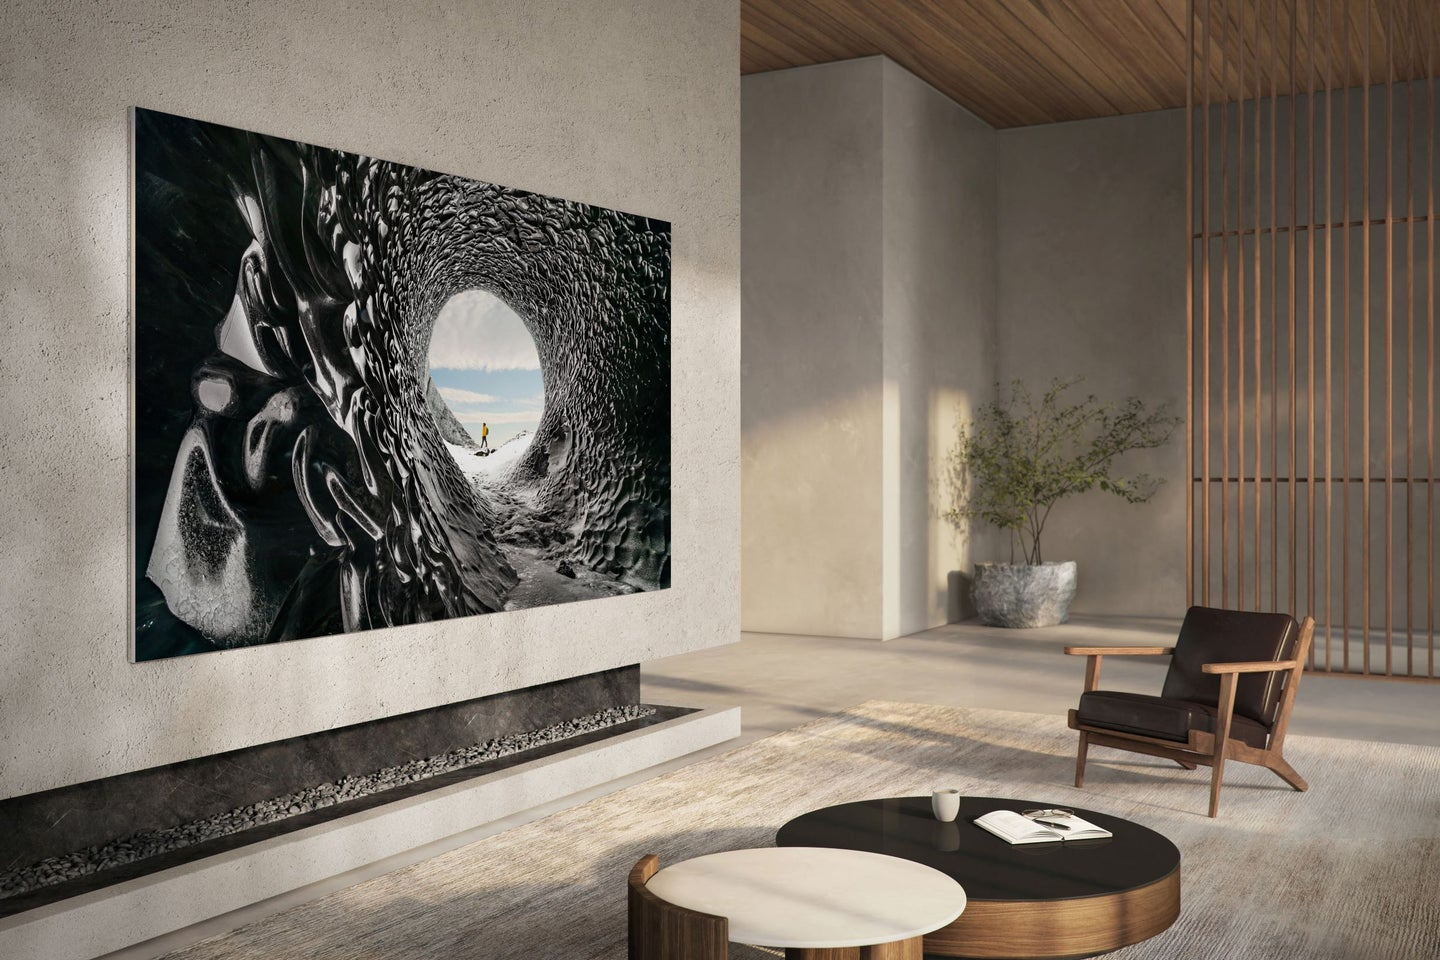 Giant samsung micro led TV in a fancy house